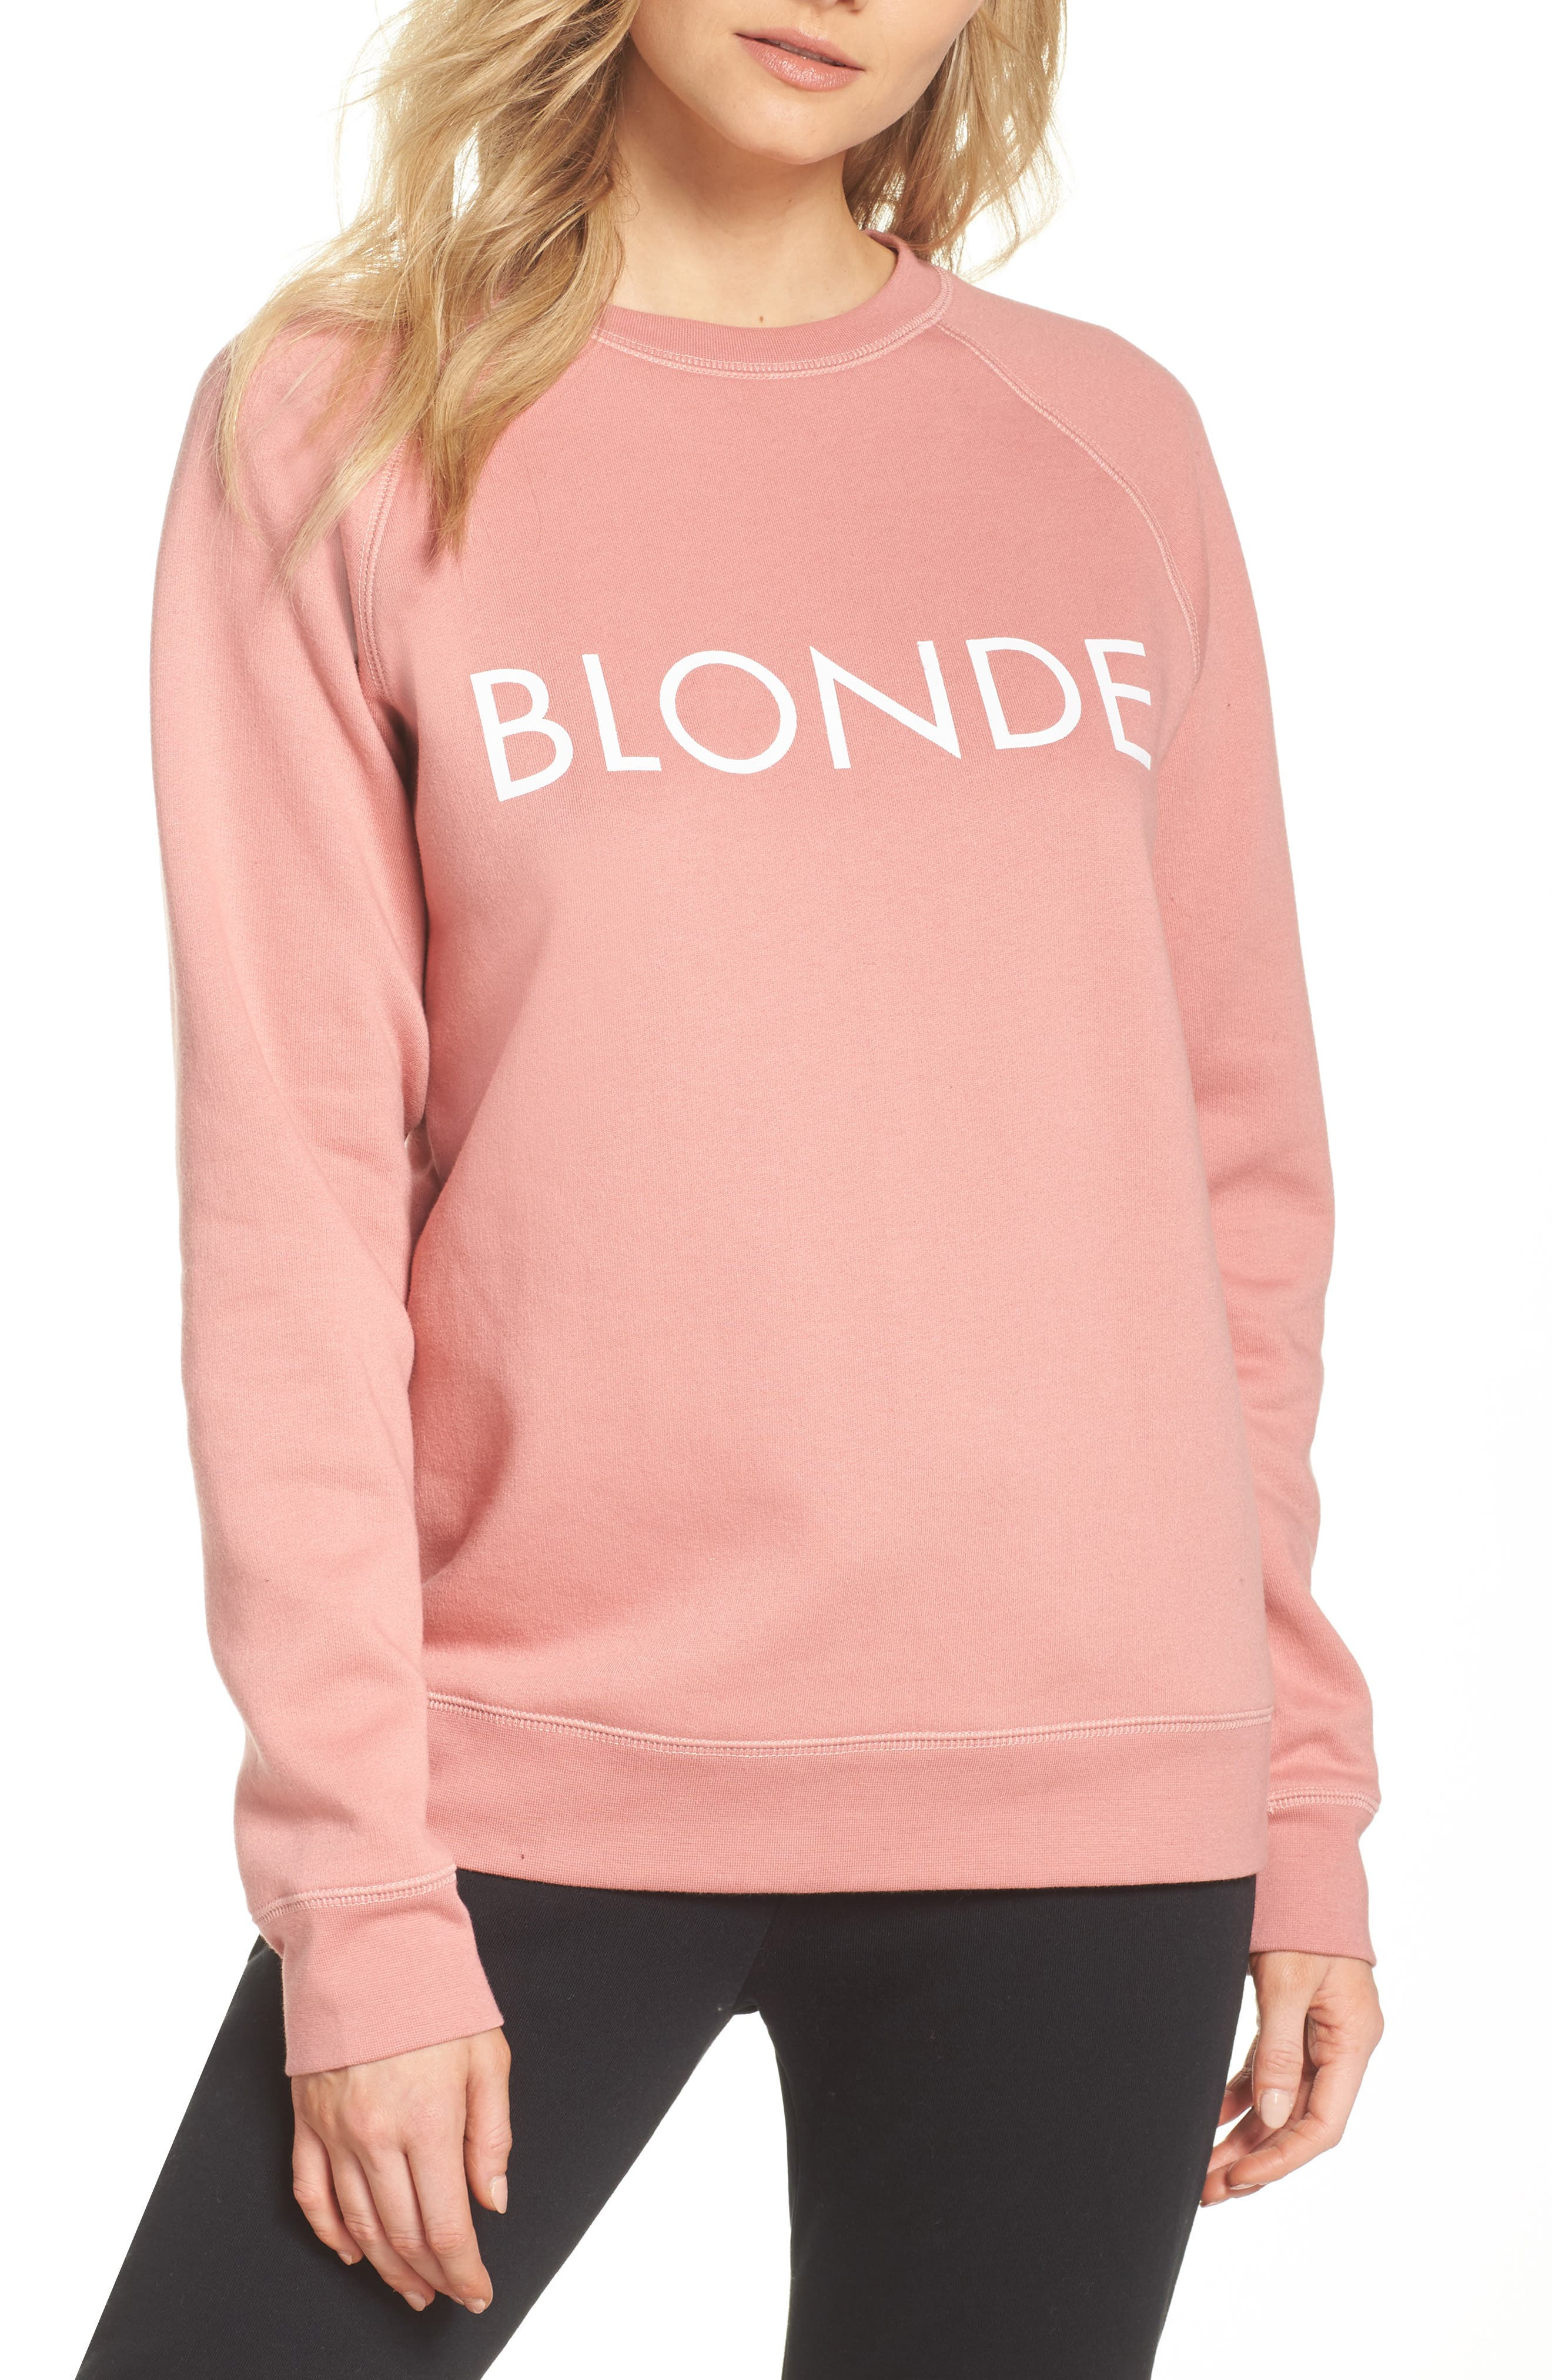 Blonde Crewneck Sweatshirt,                         Main,                         color, Dusty Rose